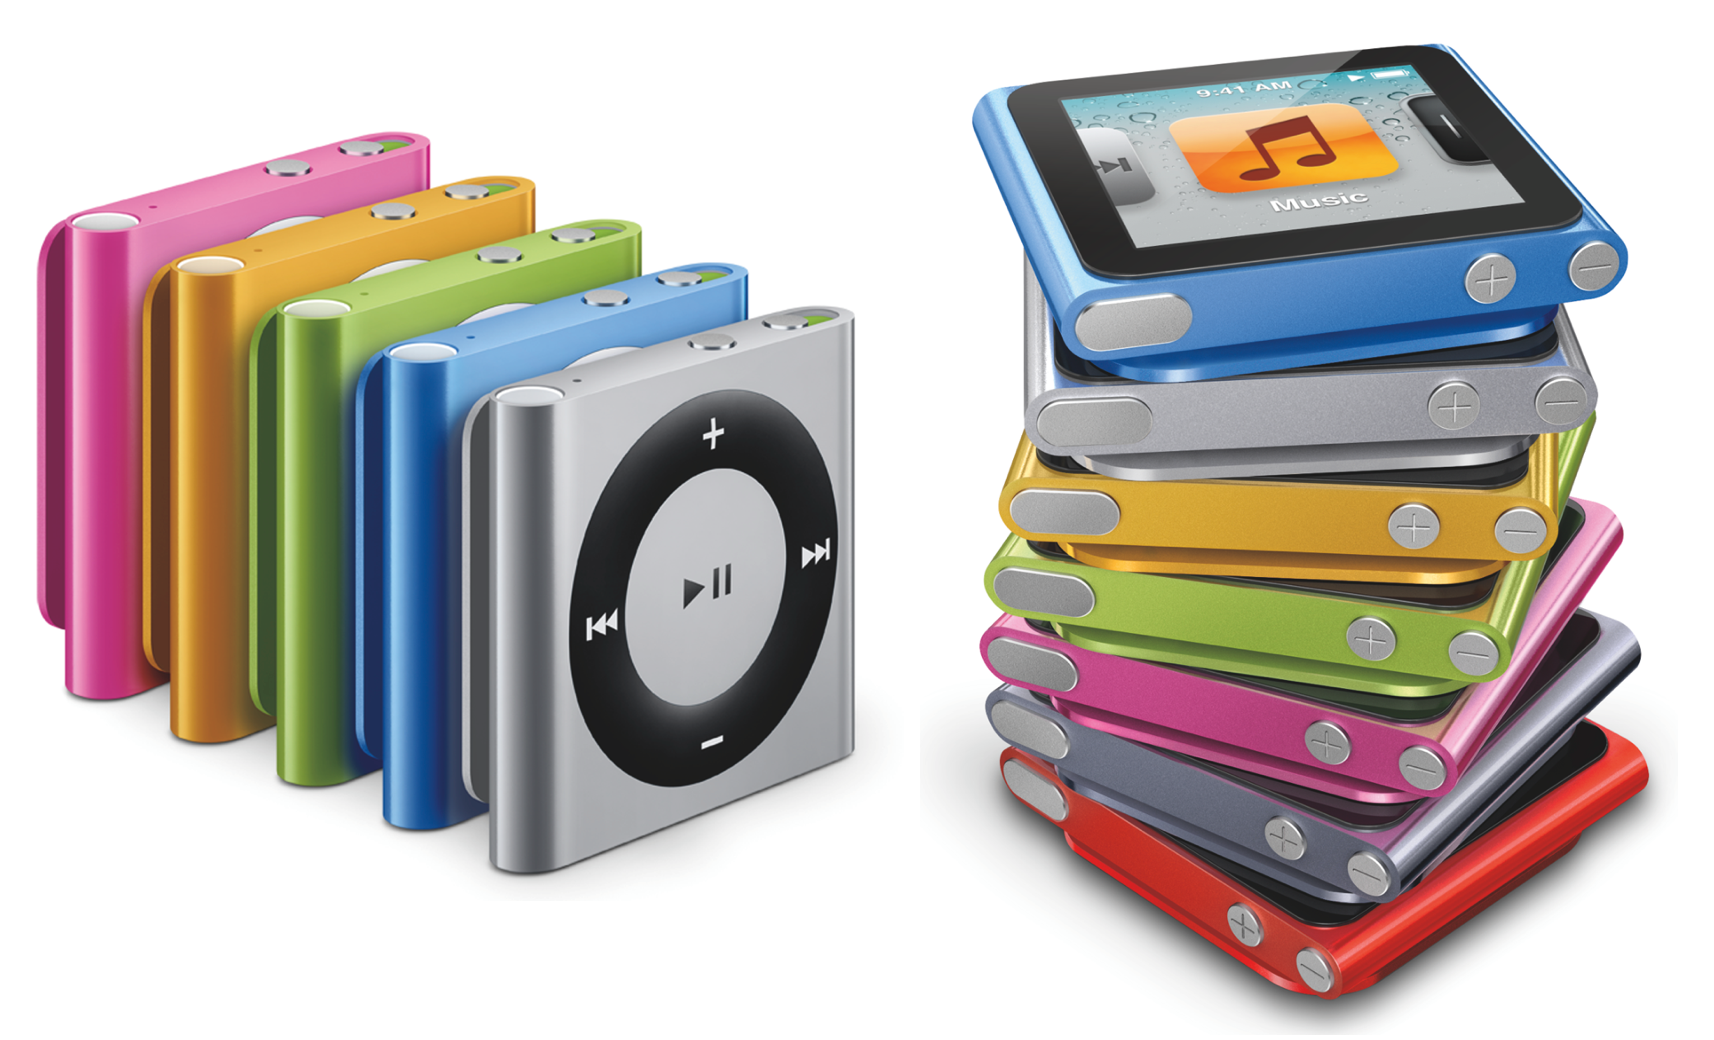 Apple S New Ipods Various New Ipod Touches New Ipod Nano Tweaked Ipod Shuffle 9to5mac